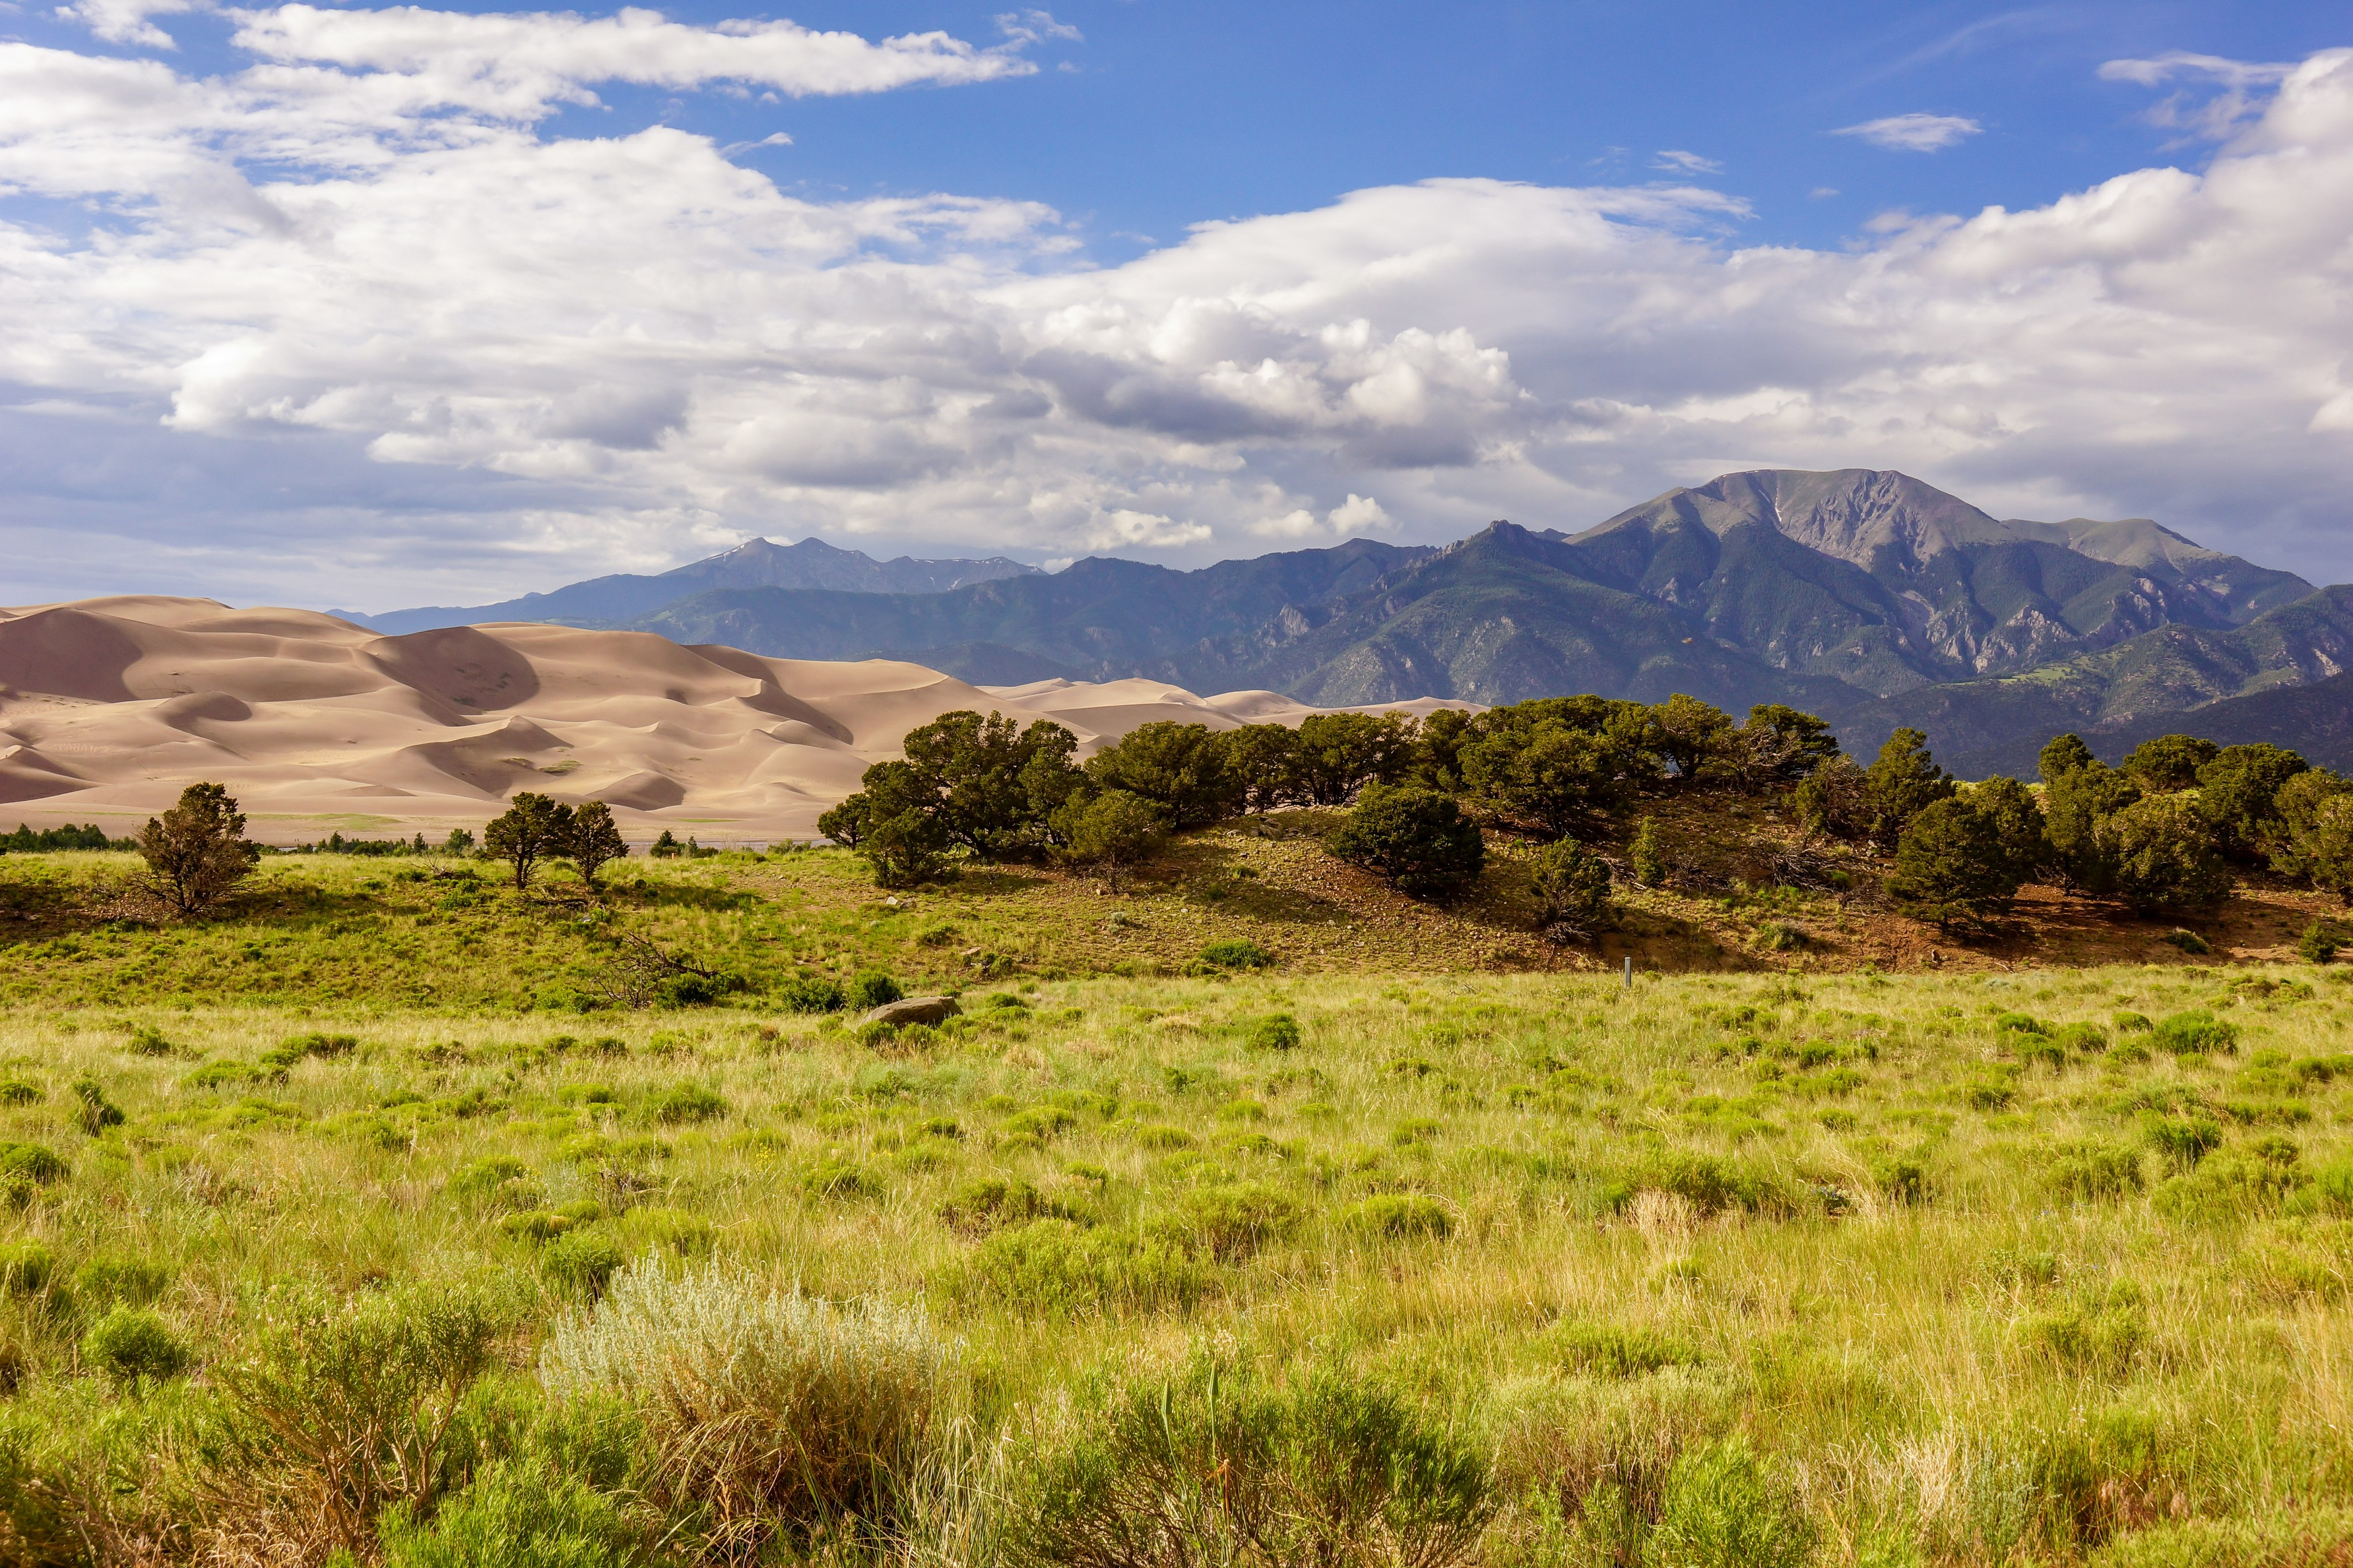 Grassy field that leads into sand dunes, then up to mountains.